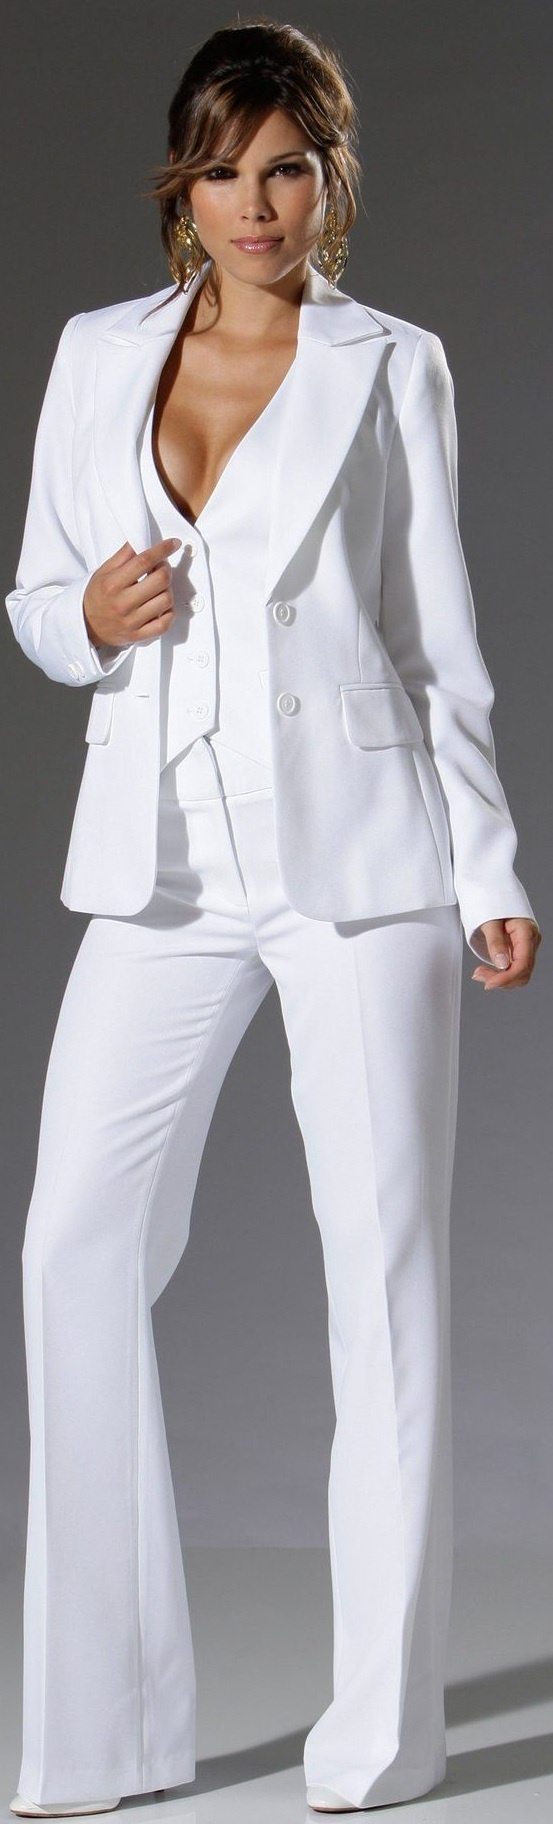 Rosamariagfrangini Office White Suits Pant Suit Women For